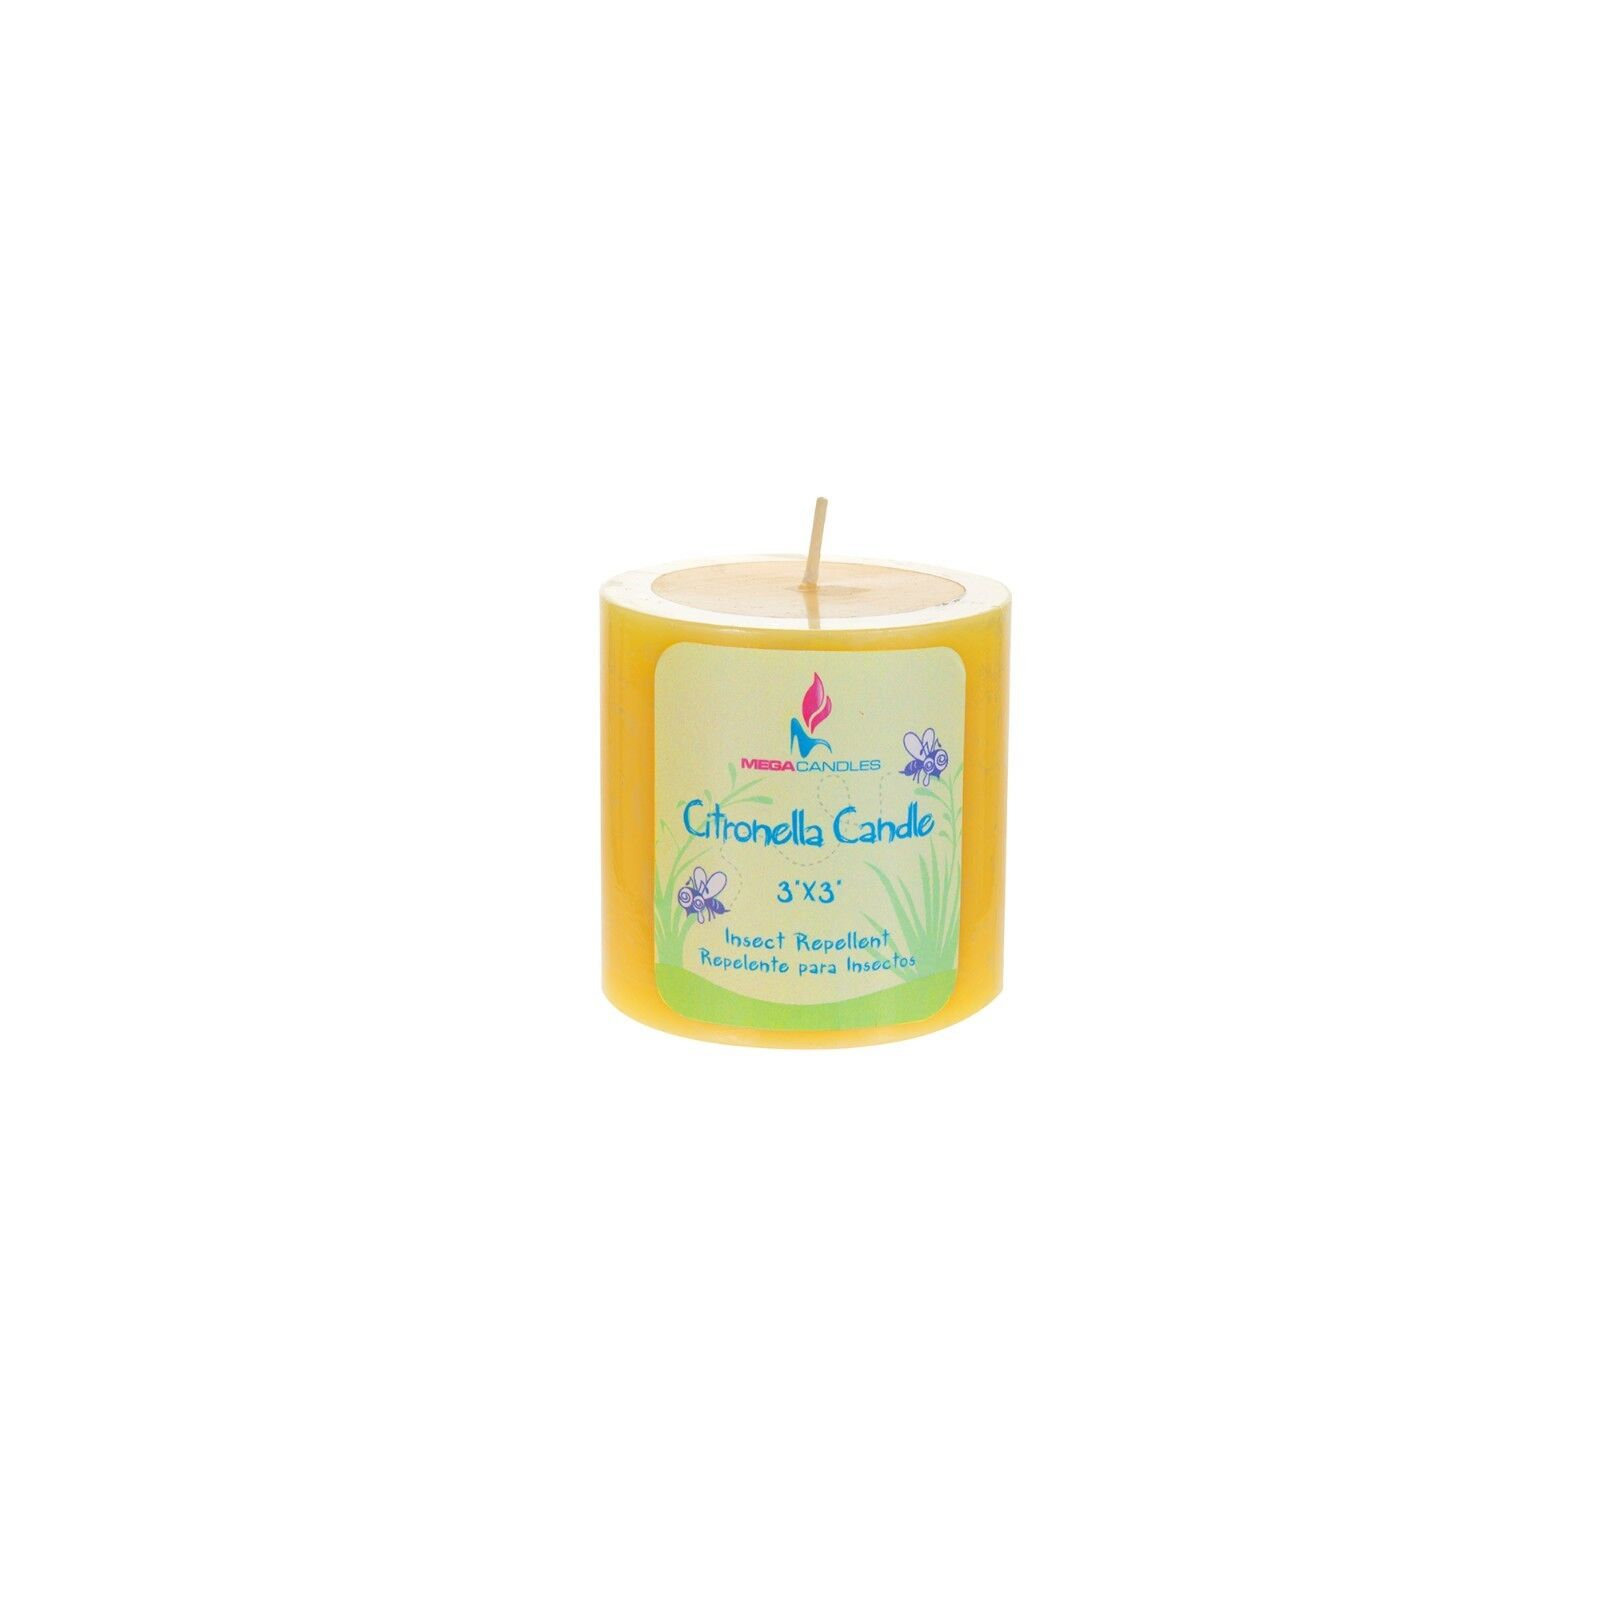 Mega Candles 3 pcs Citronella Round Pillar Candle | Hand Pou